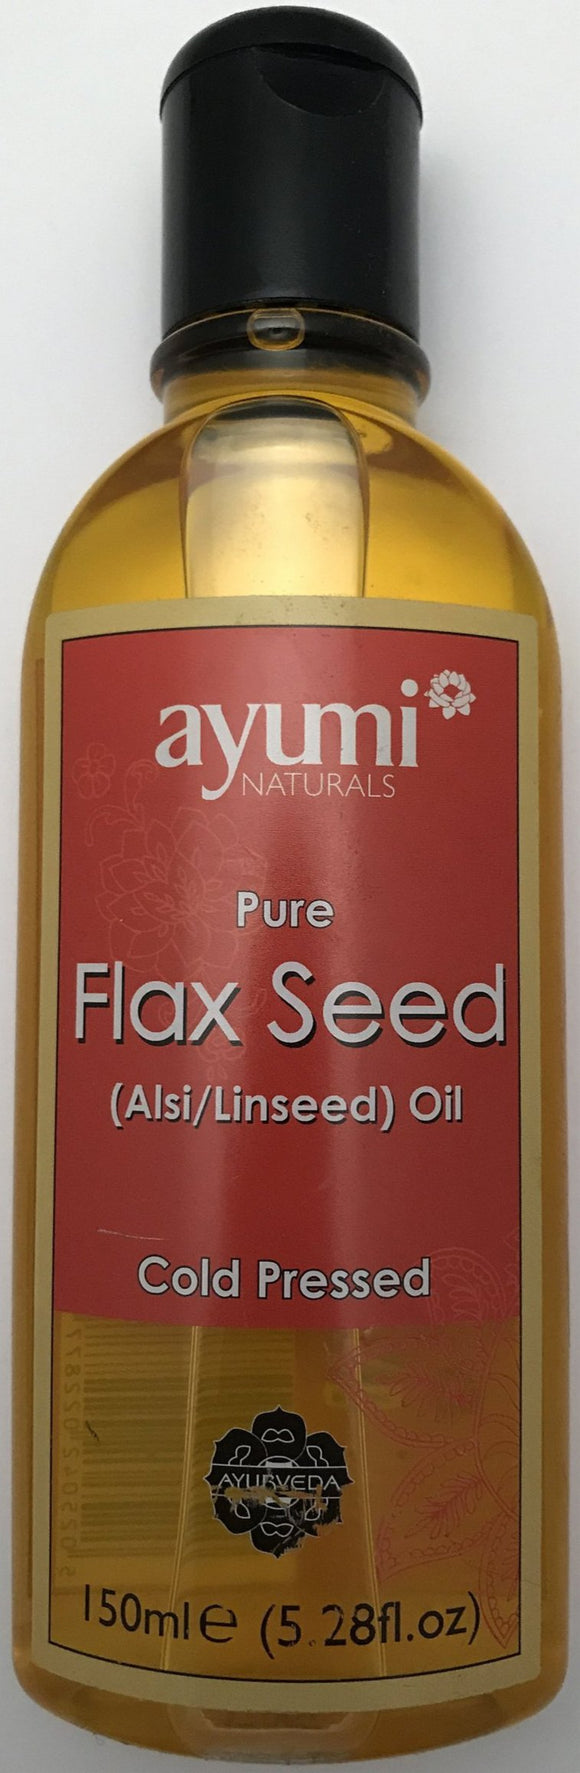 Ayumi Flax Seed (Alsi/Linseed) Oil - 150ml - ExoticEstore